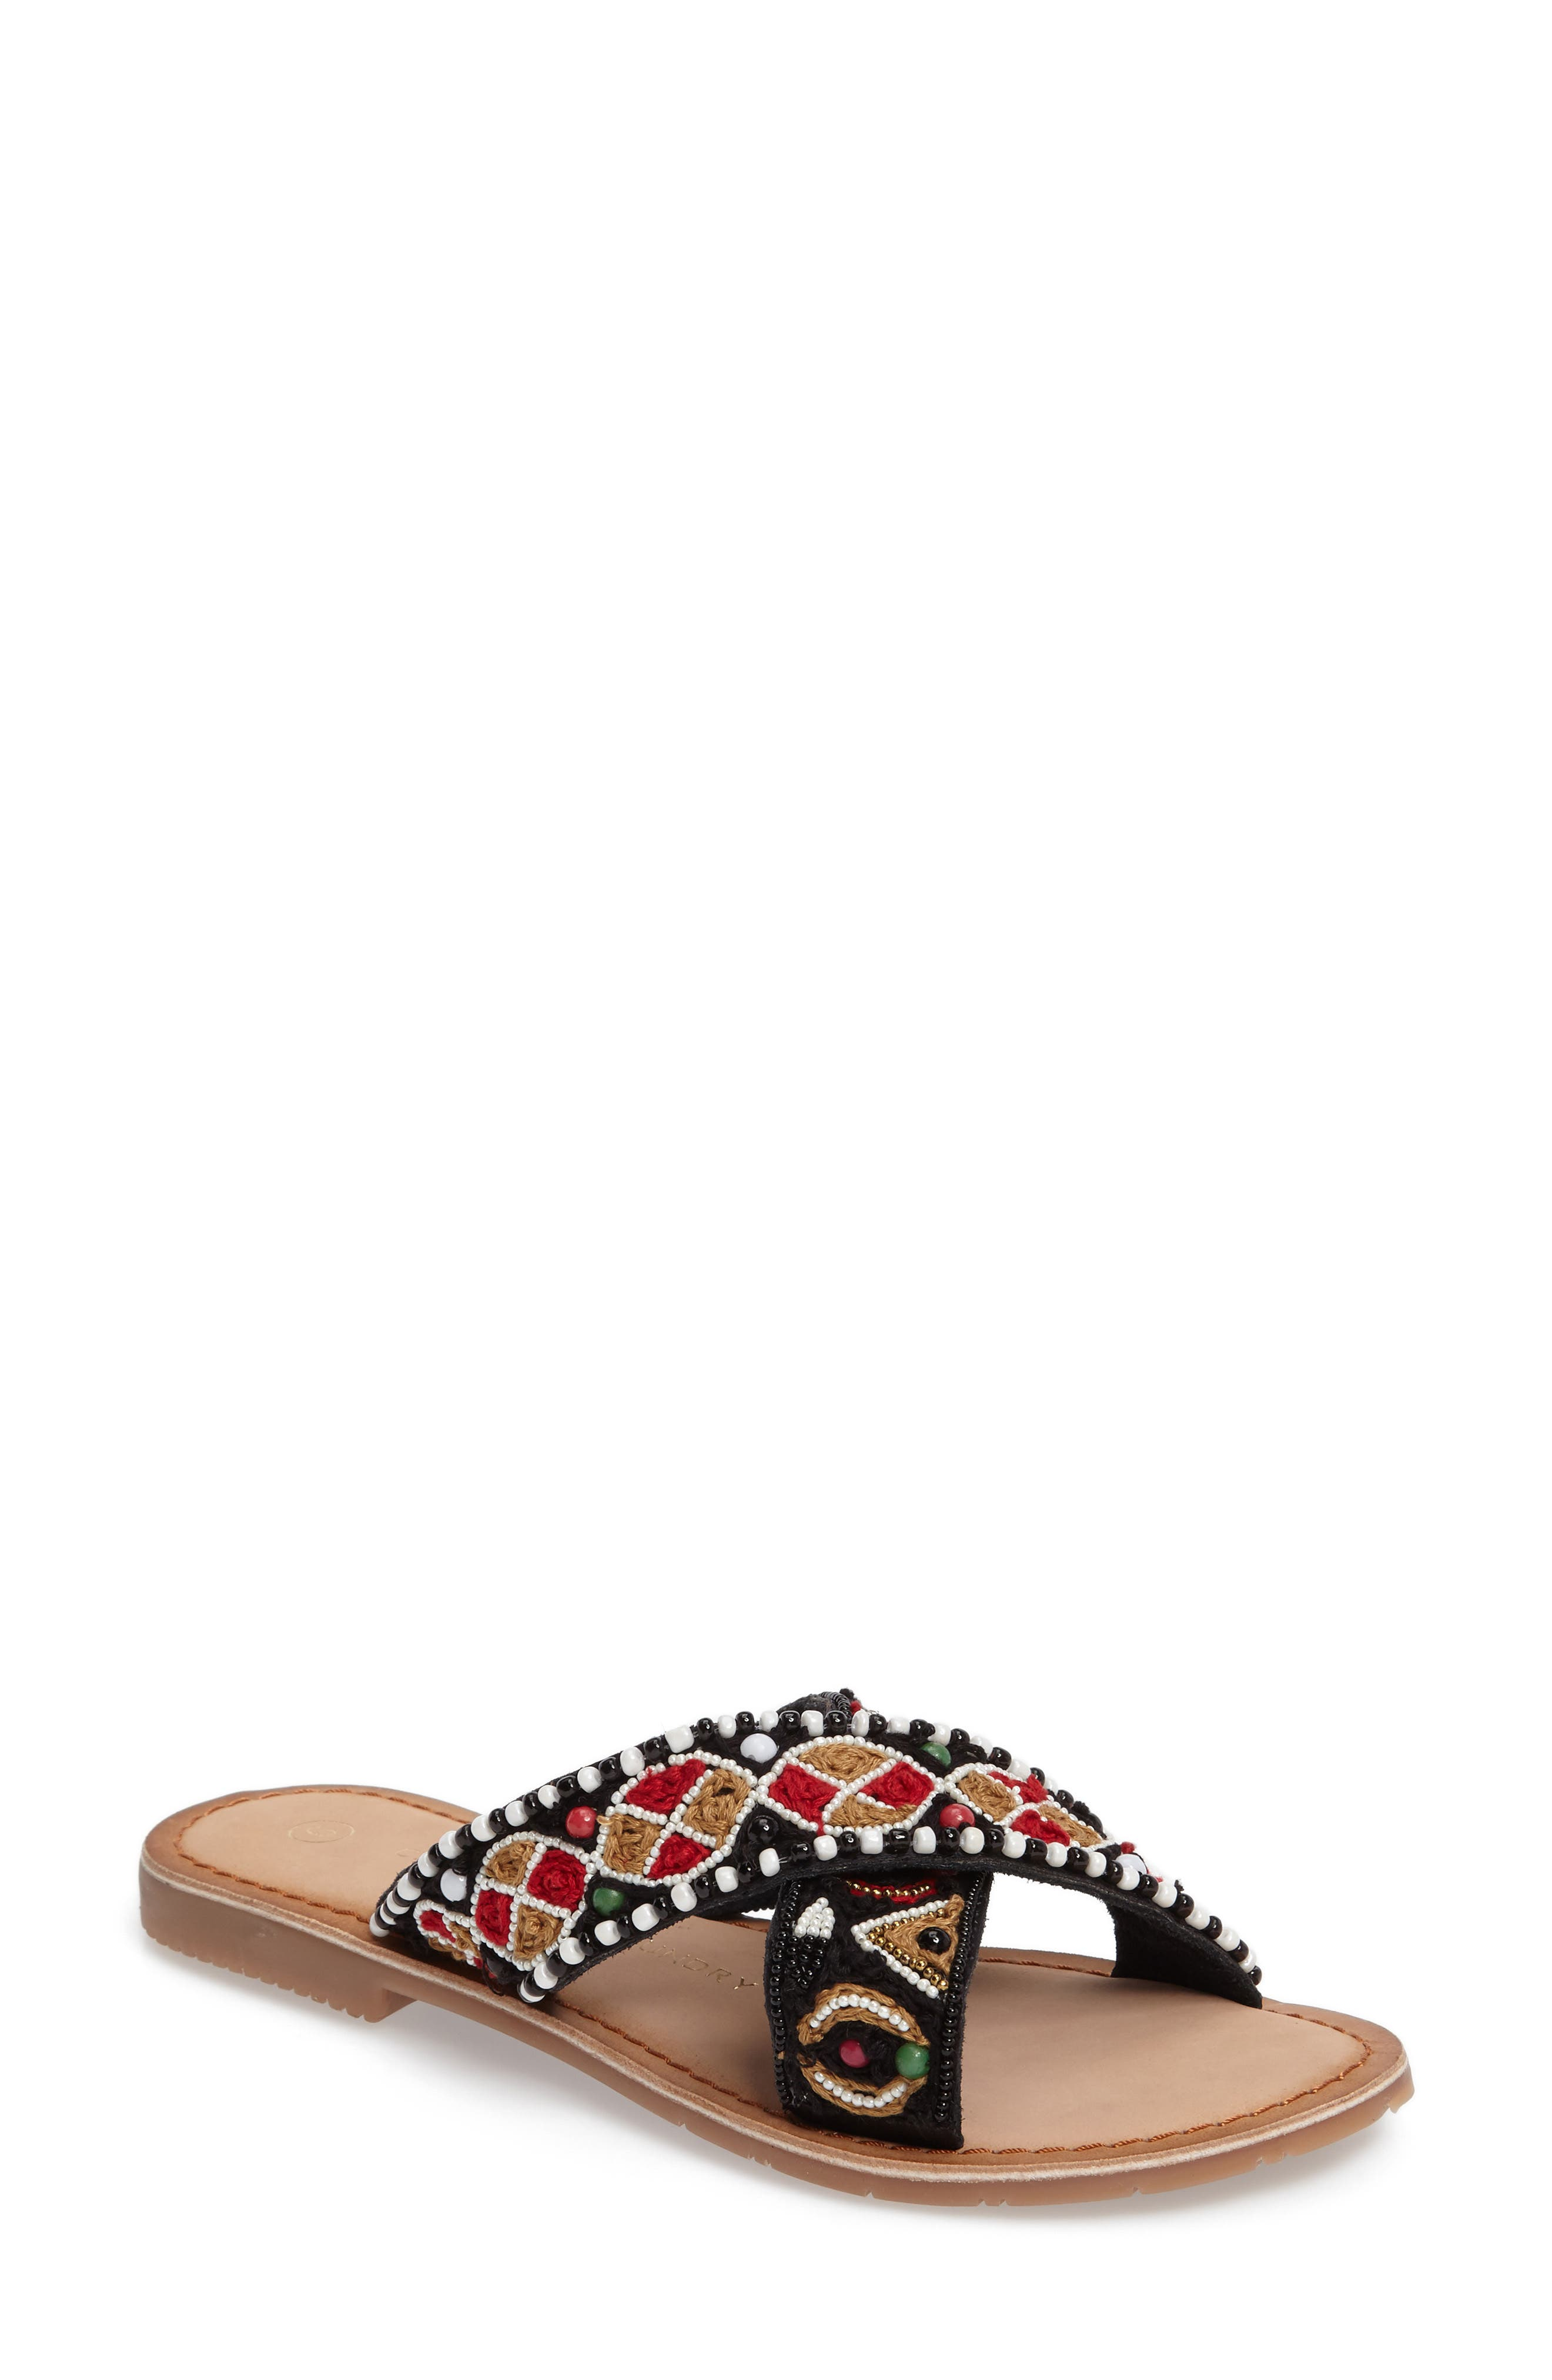 CHINESE LAUNDRY Purfect Slide Sandal, Main, color, 001